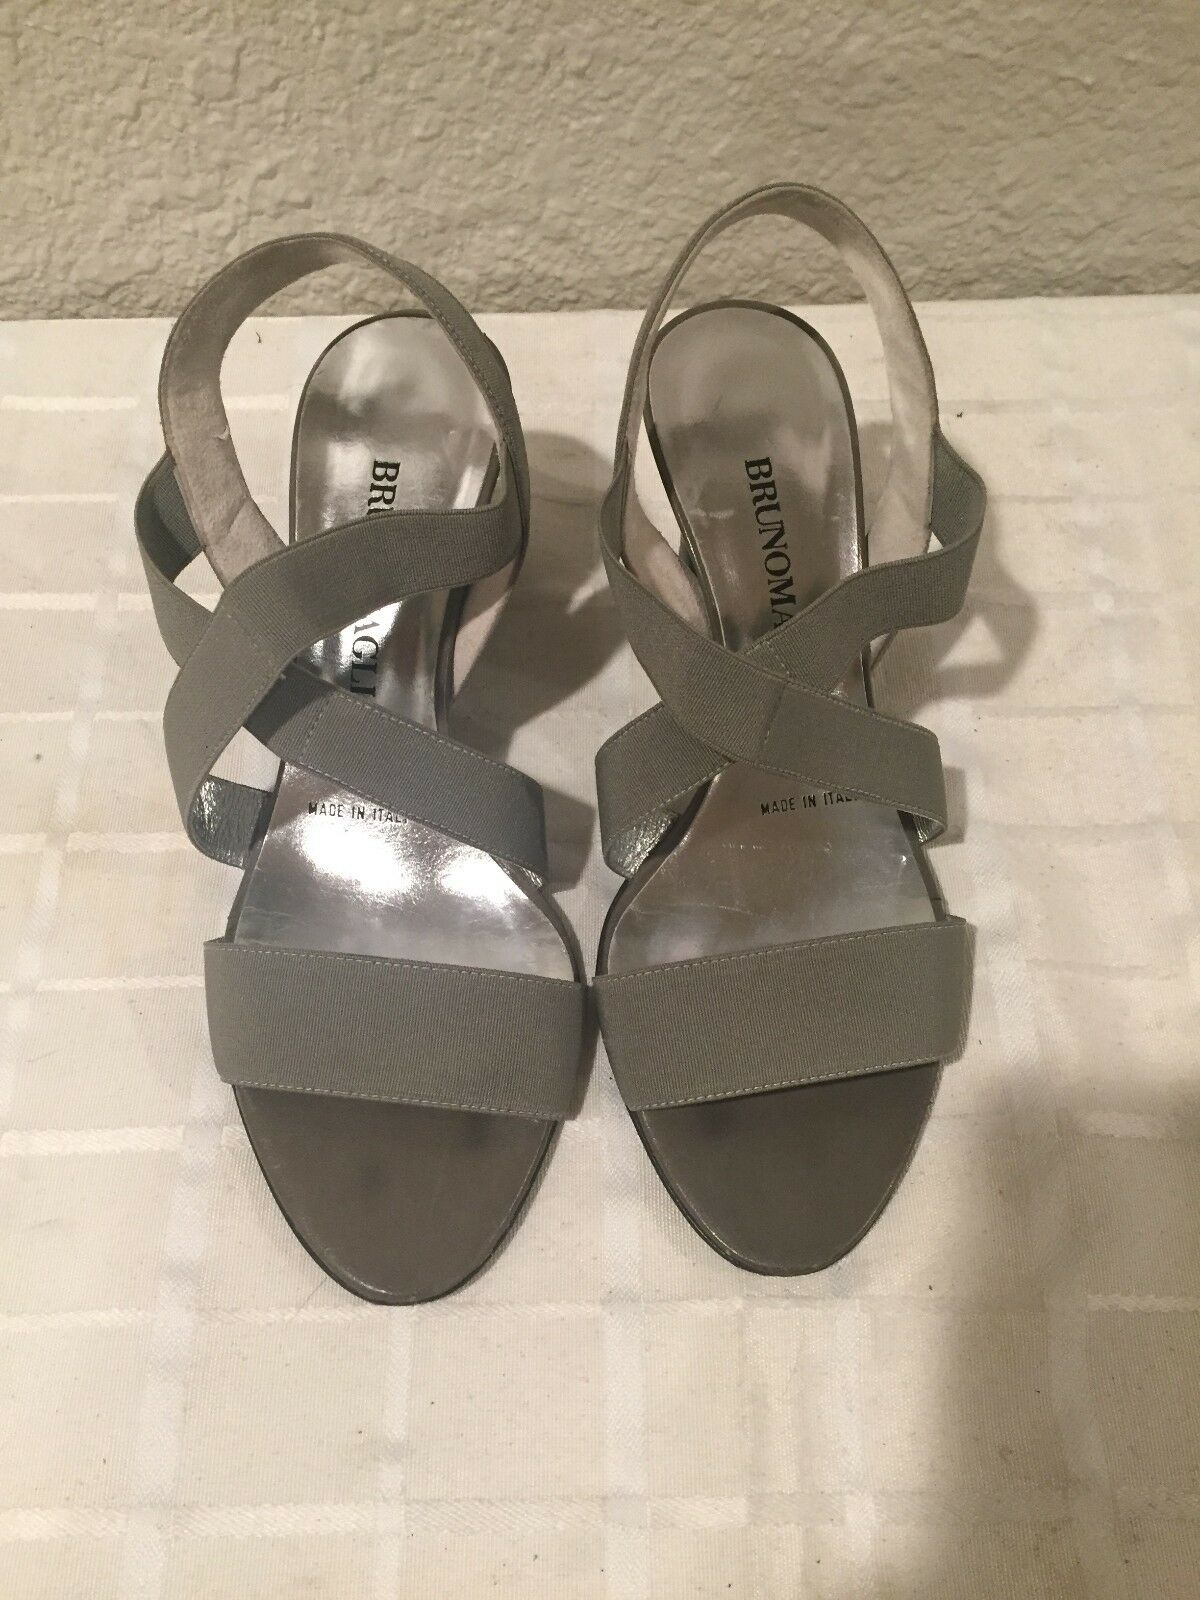 Bruno Magli Silber grau Fabric Sandals Heels 35 EU 5 US Made in